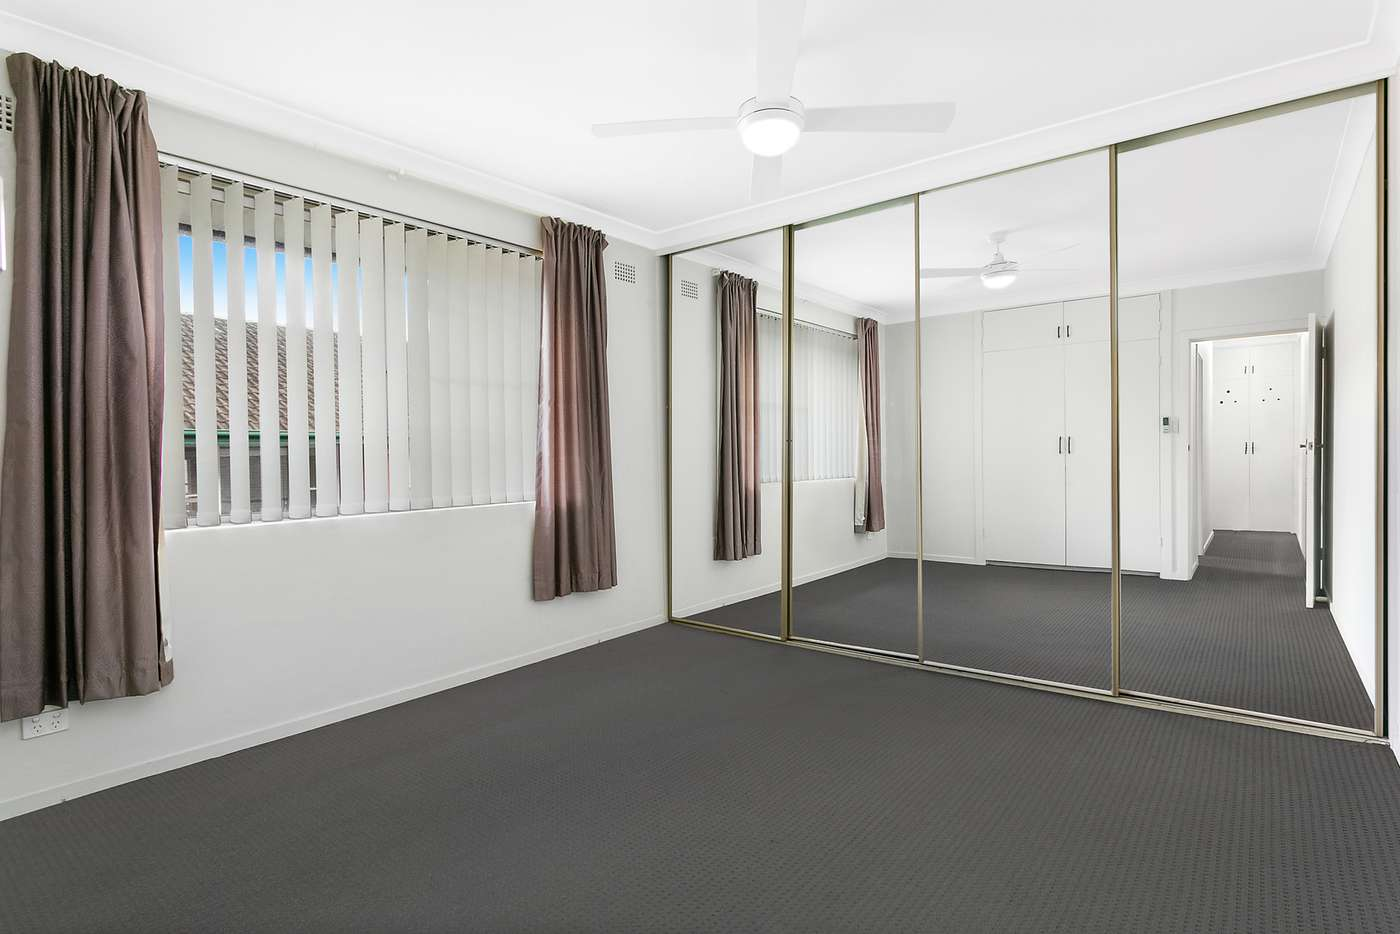 Fifth view of Homely apartment listing, 8/61 Garfield Street, Five Dock NSW 2046